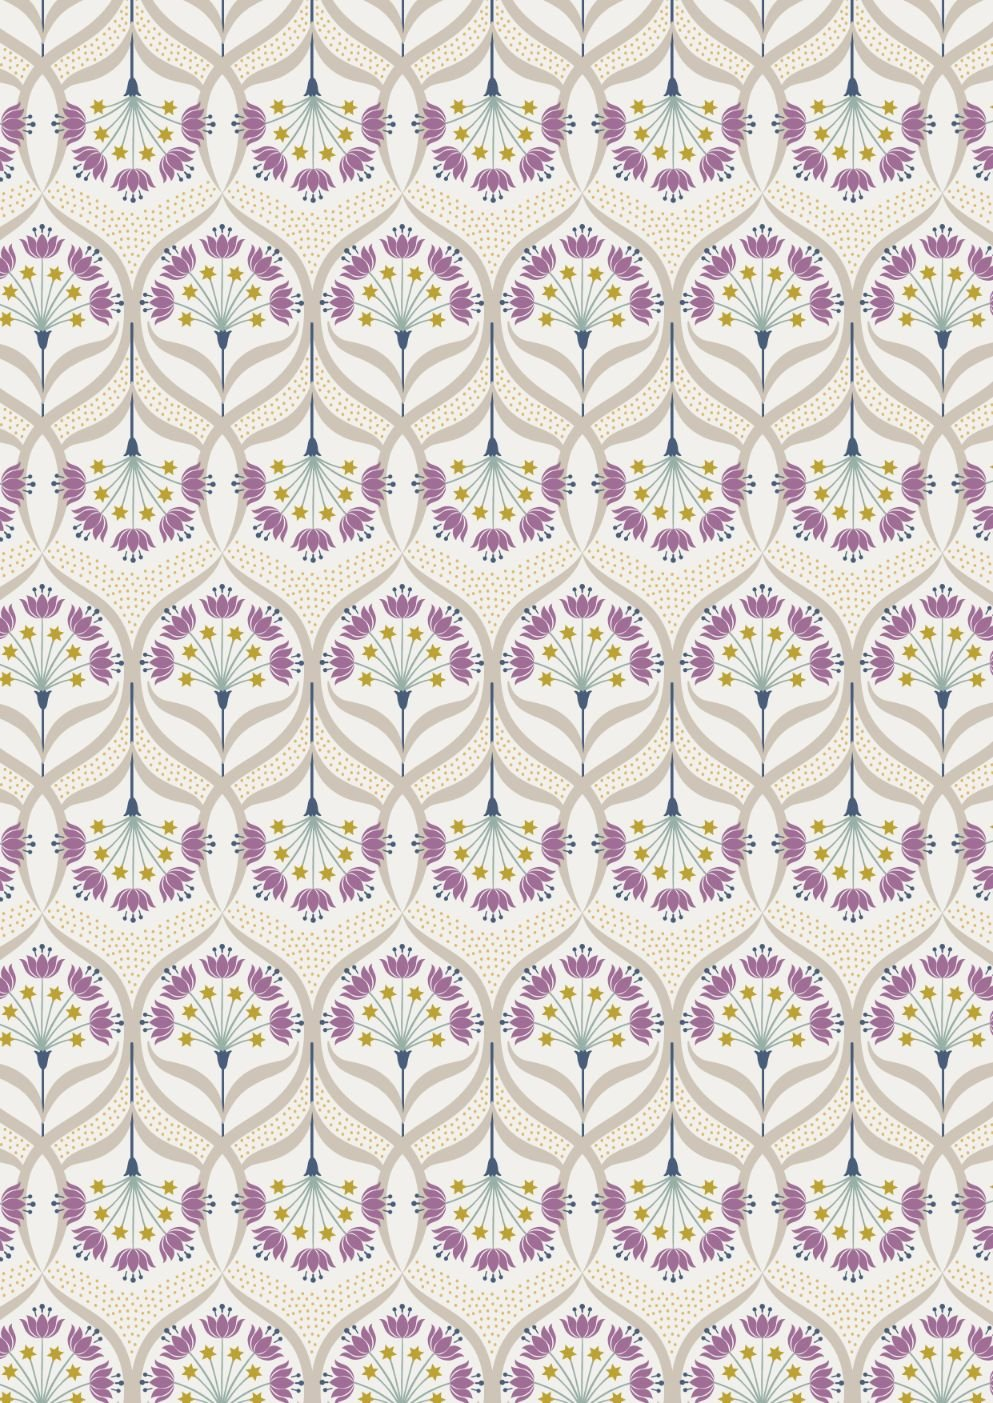 Jardin de Lis by Lewis & Irene - Star Floral on Cream with Gold Metallic